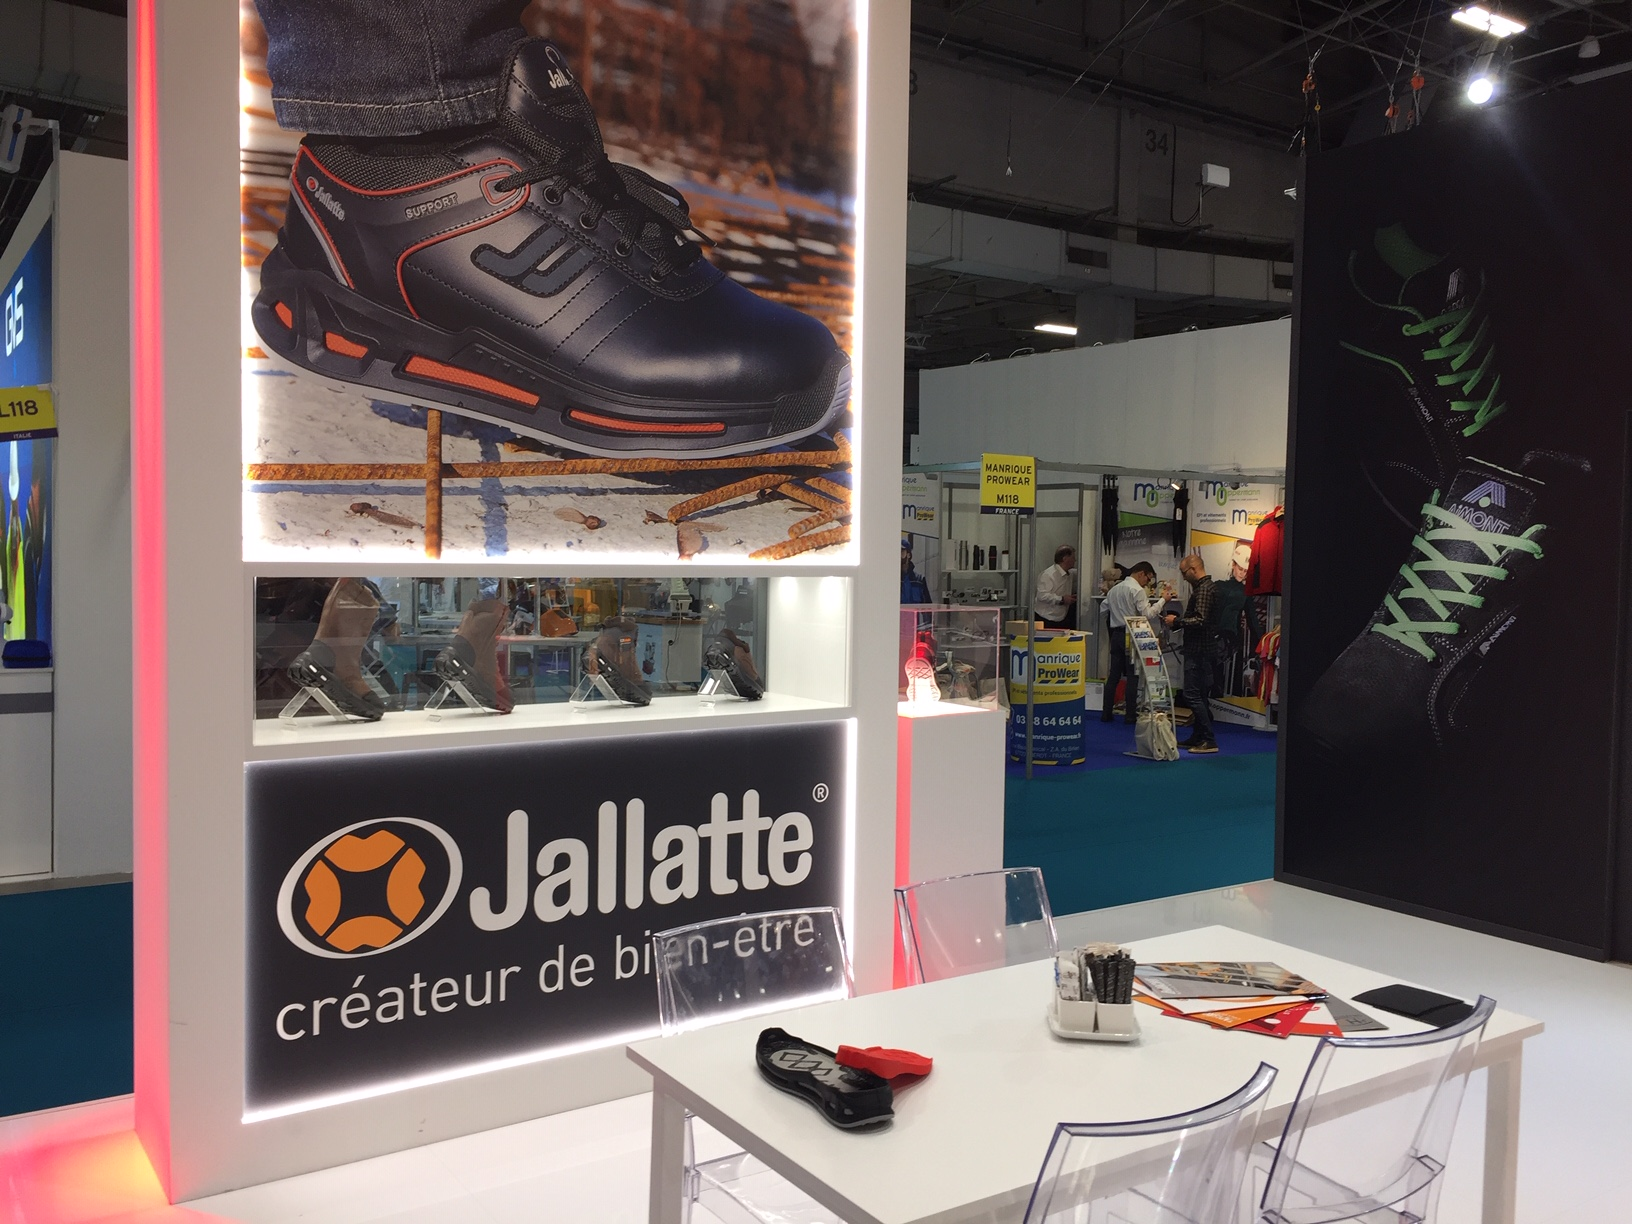 Stand Expoprotection Jallatte 2018